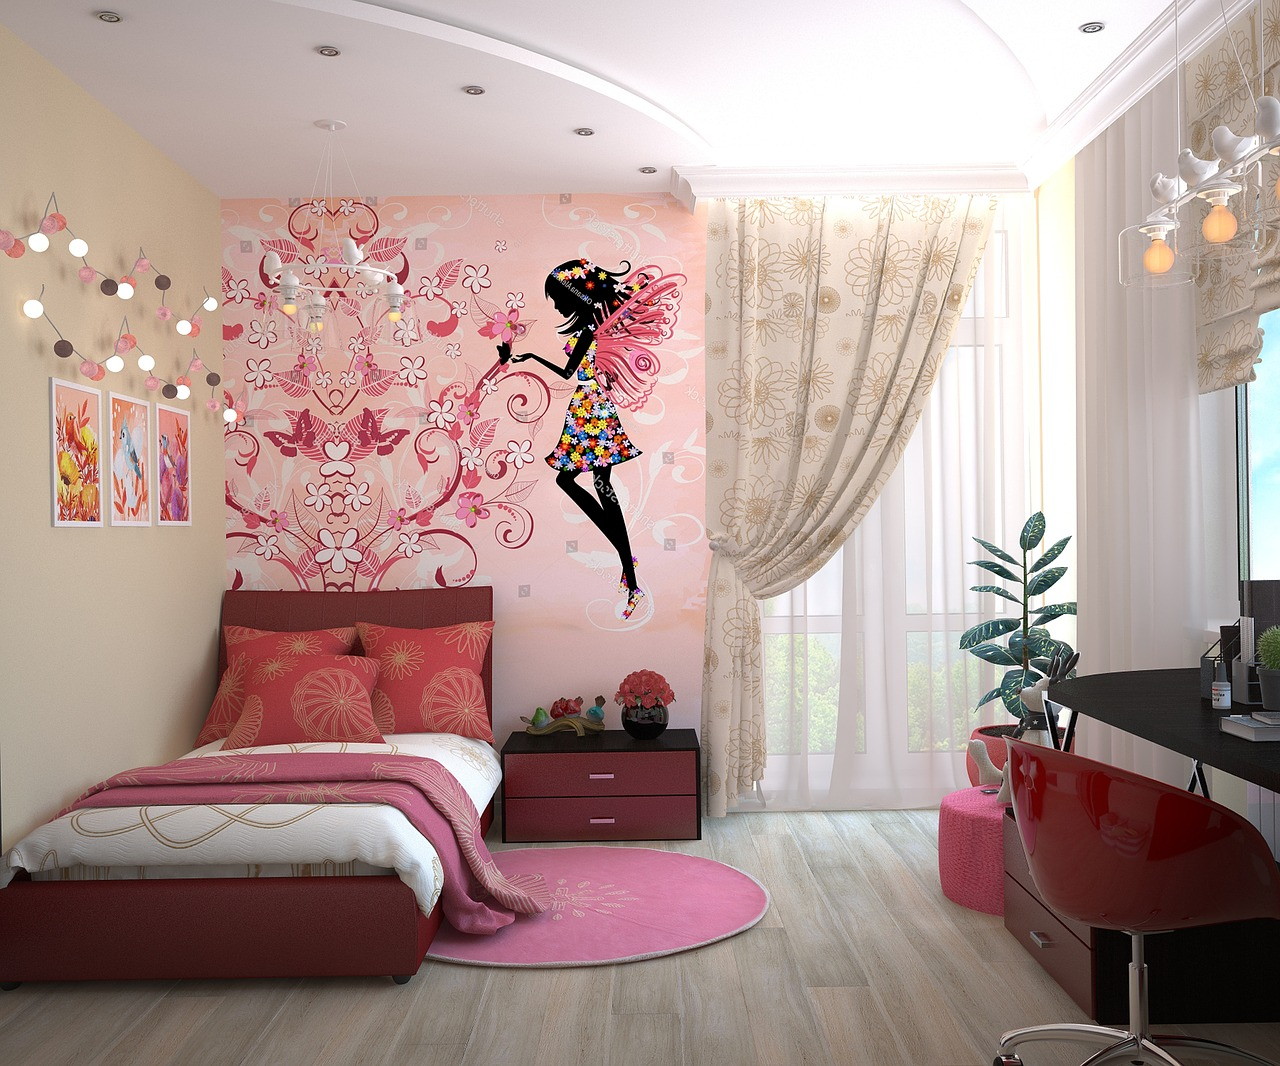 Customized Bedroom Interior Design Solution